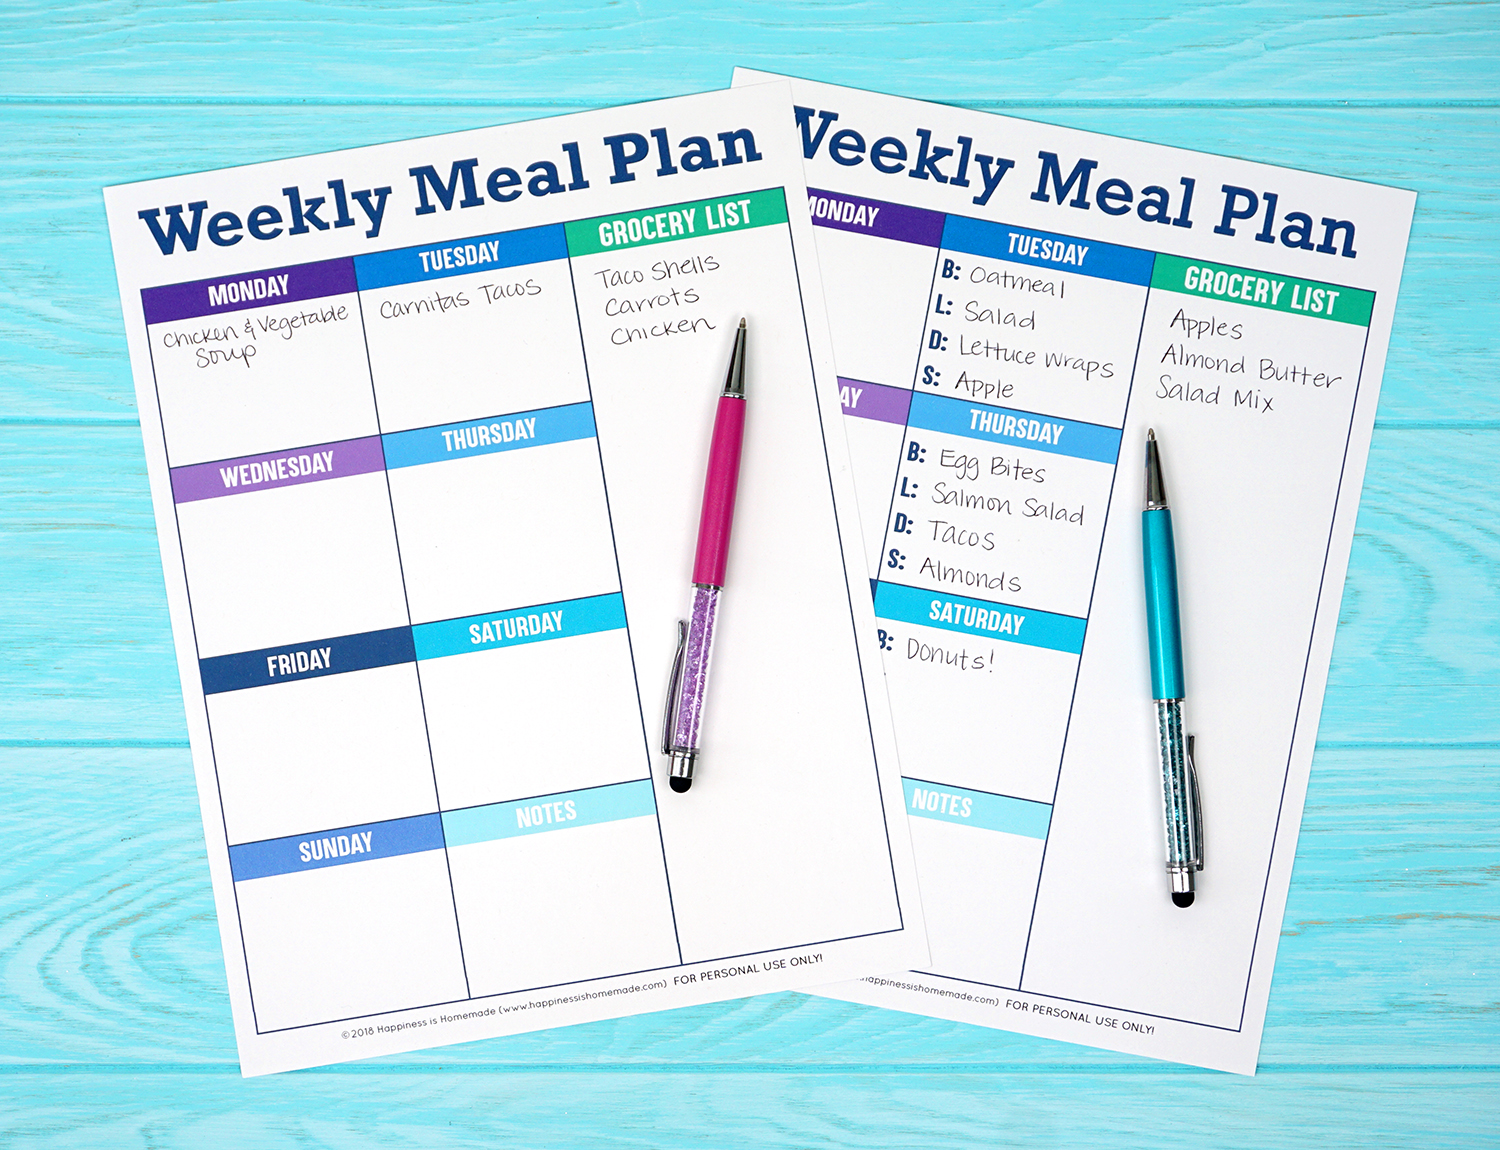 photograph relating to Weekly Menu Planner Printable known as Printable Weekly Evening meal Planner Template - Joy is Selfmade